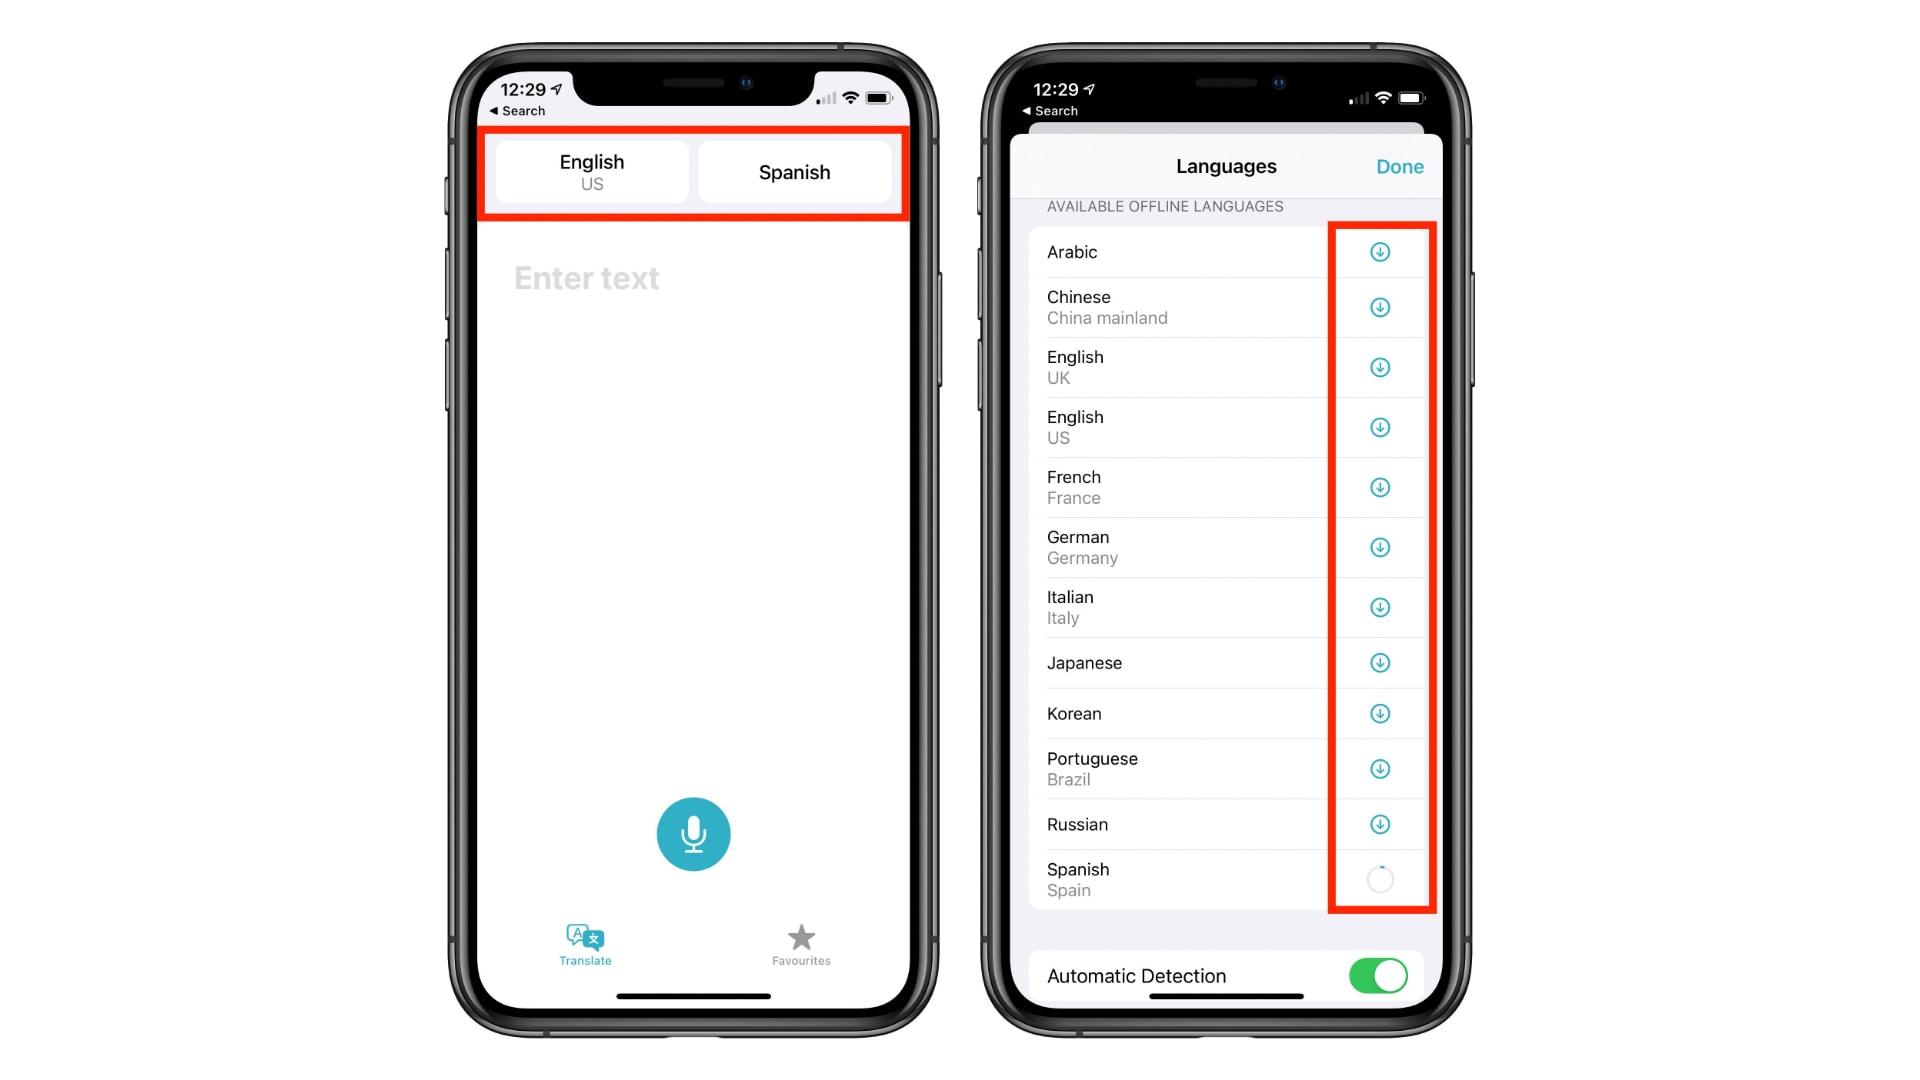 Download the language for offline use of the new translation app for iOS14